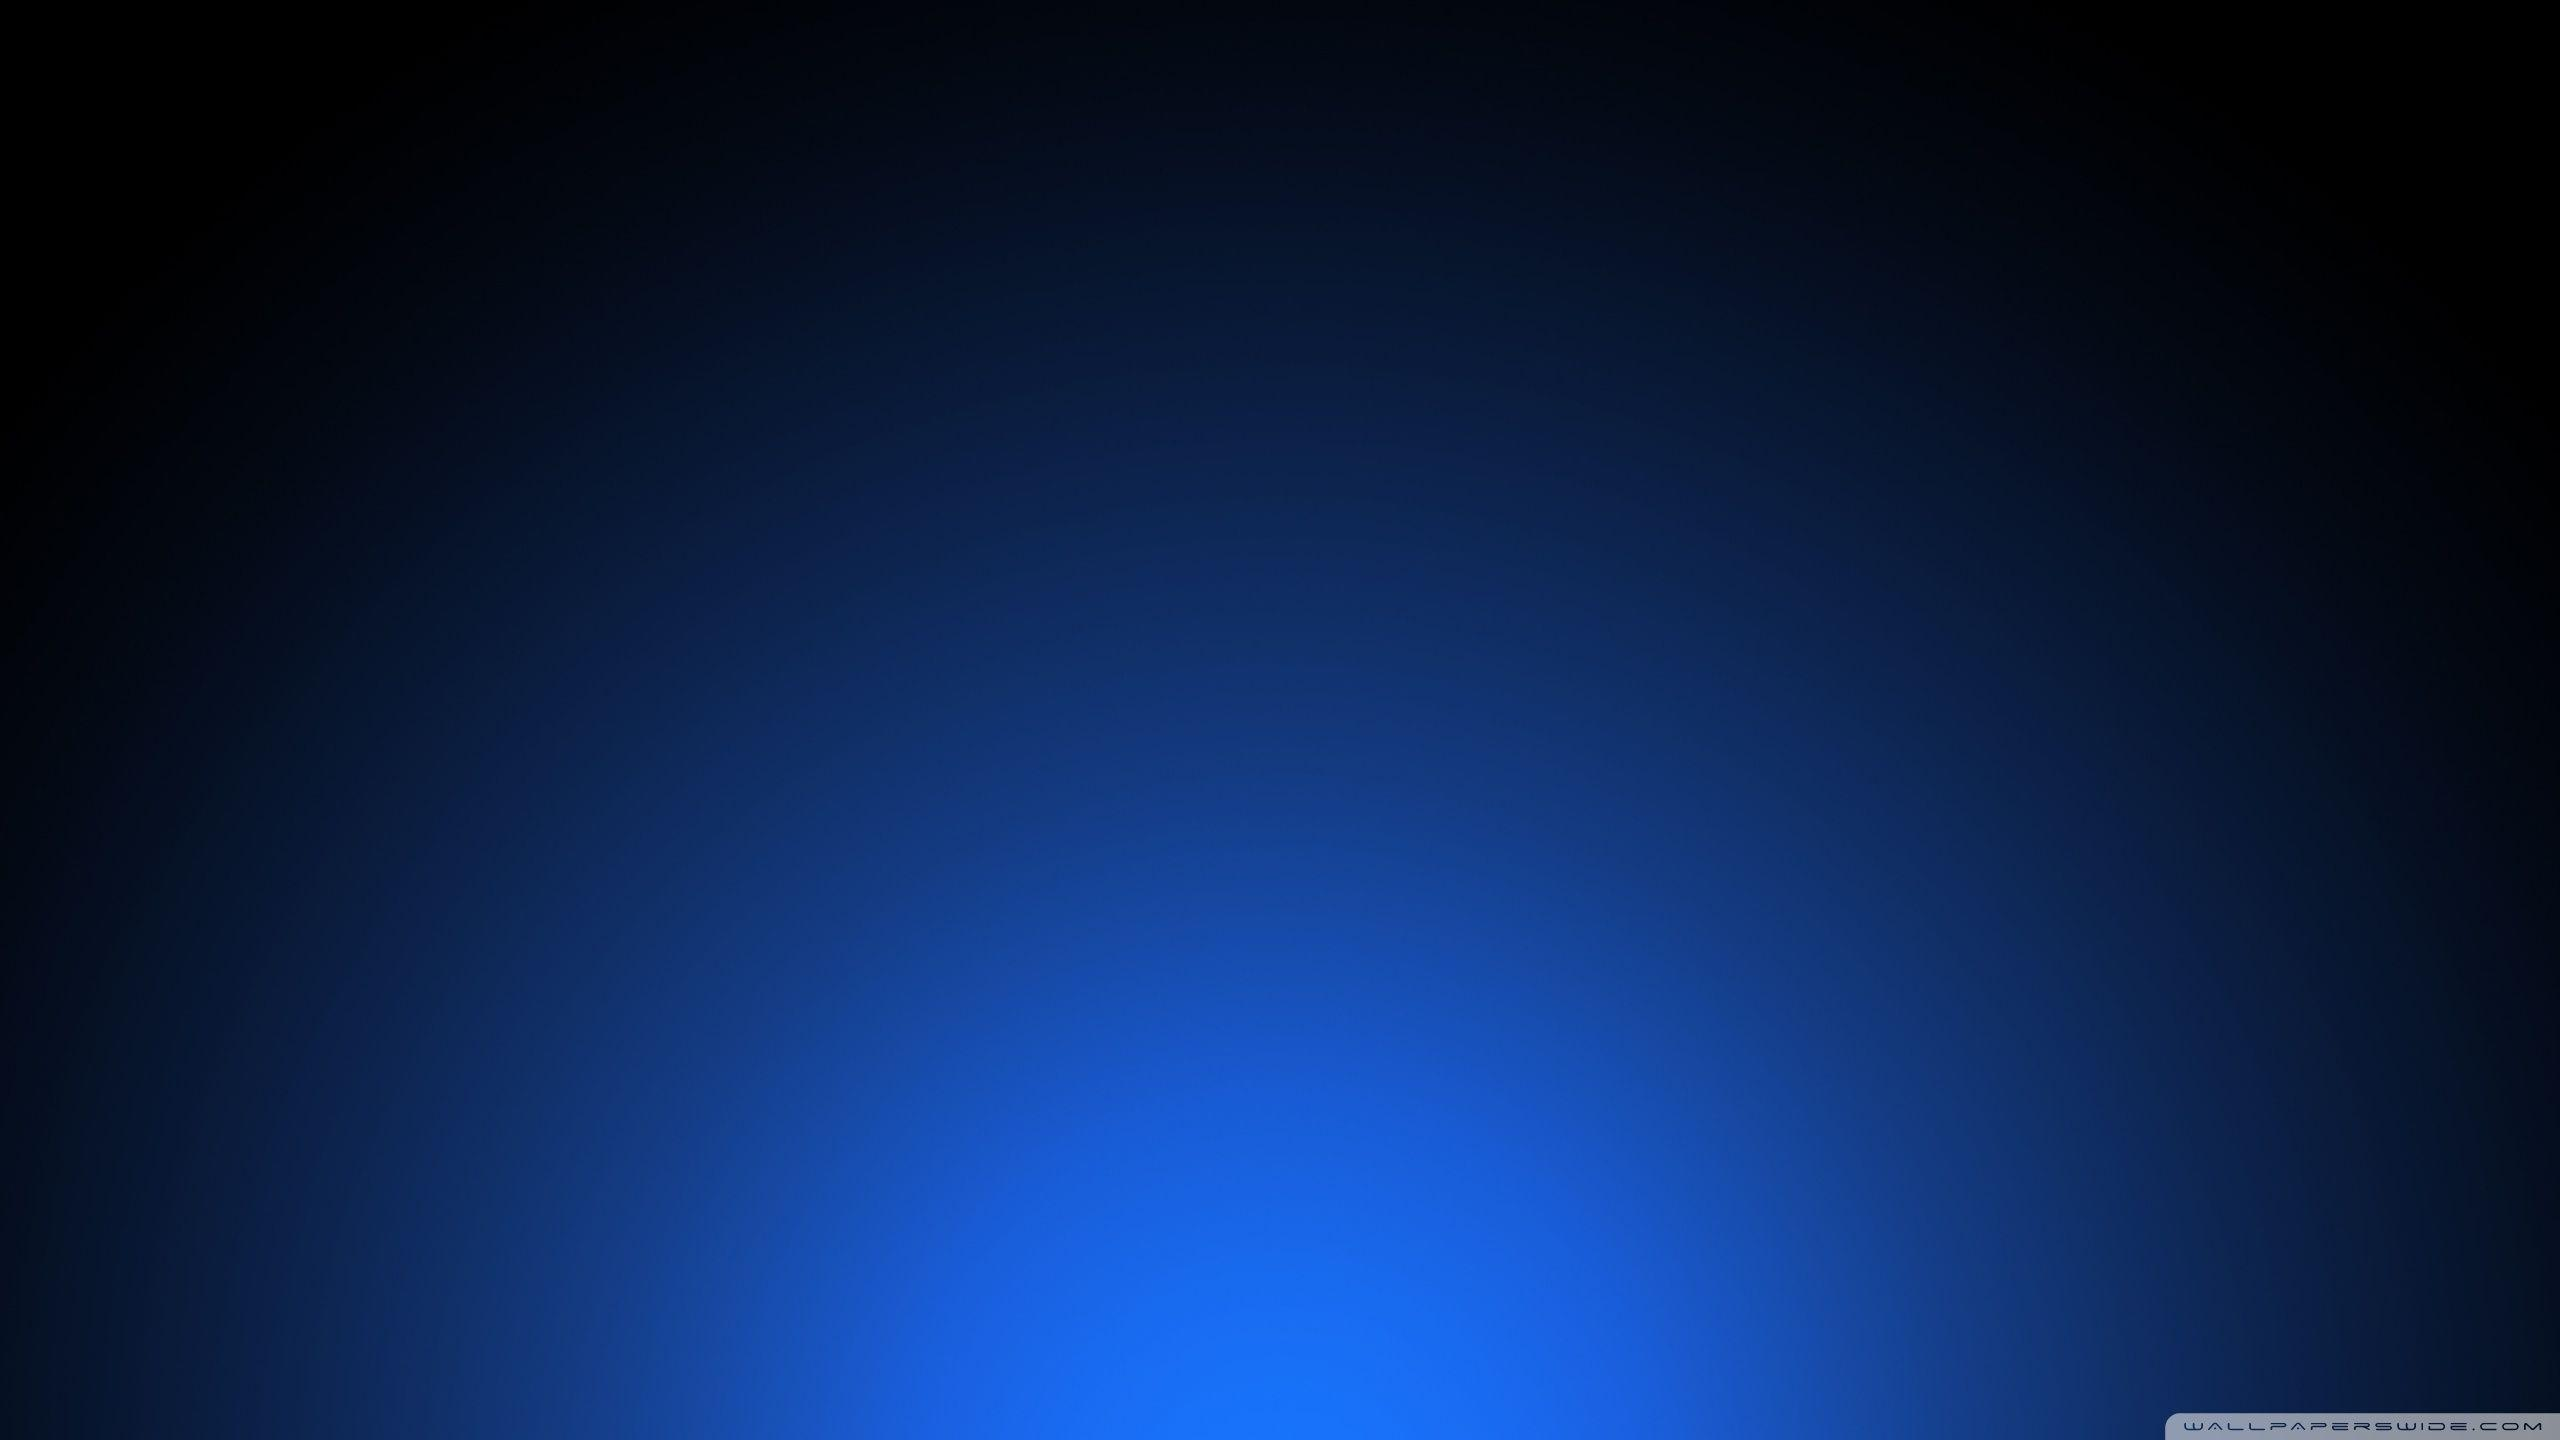 Black background hd pic download